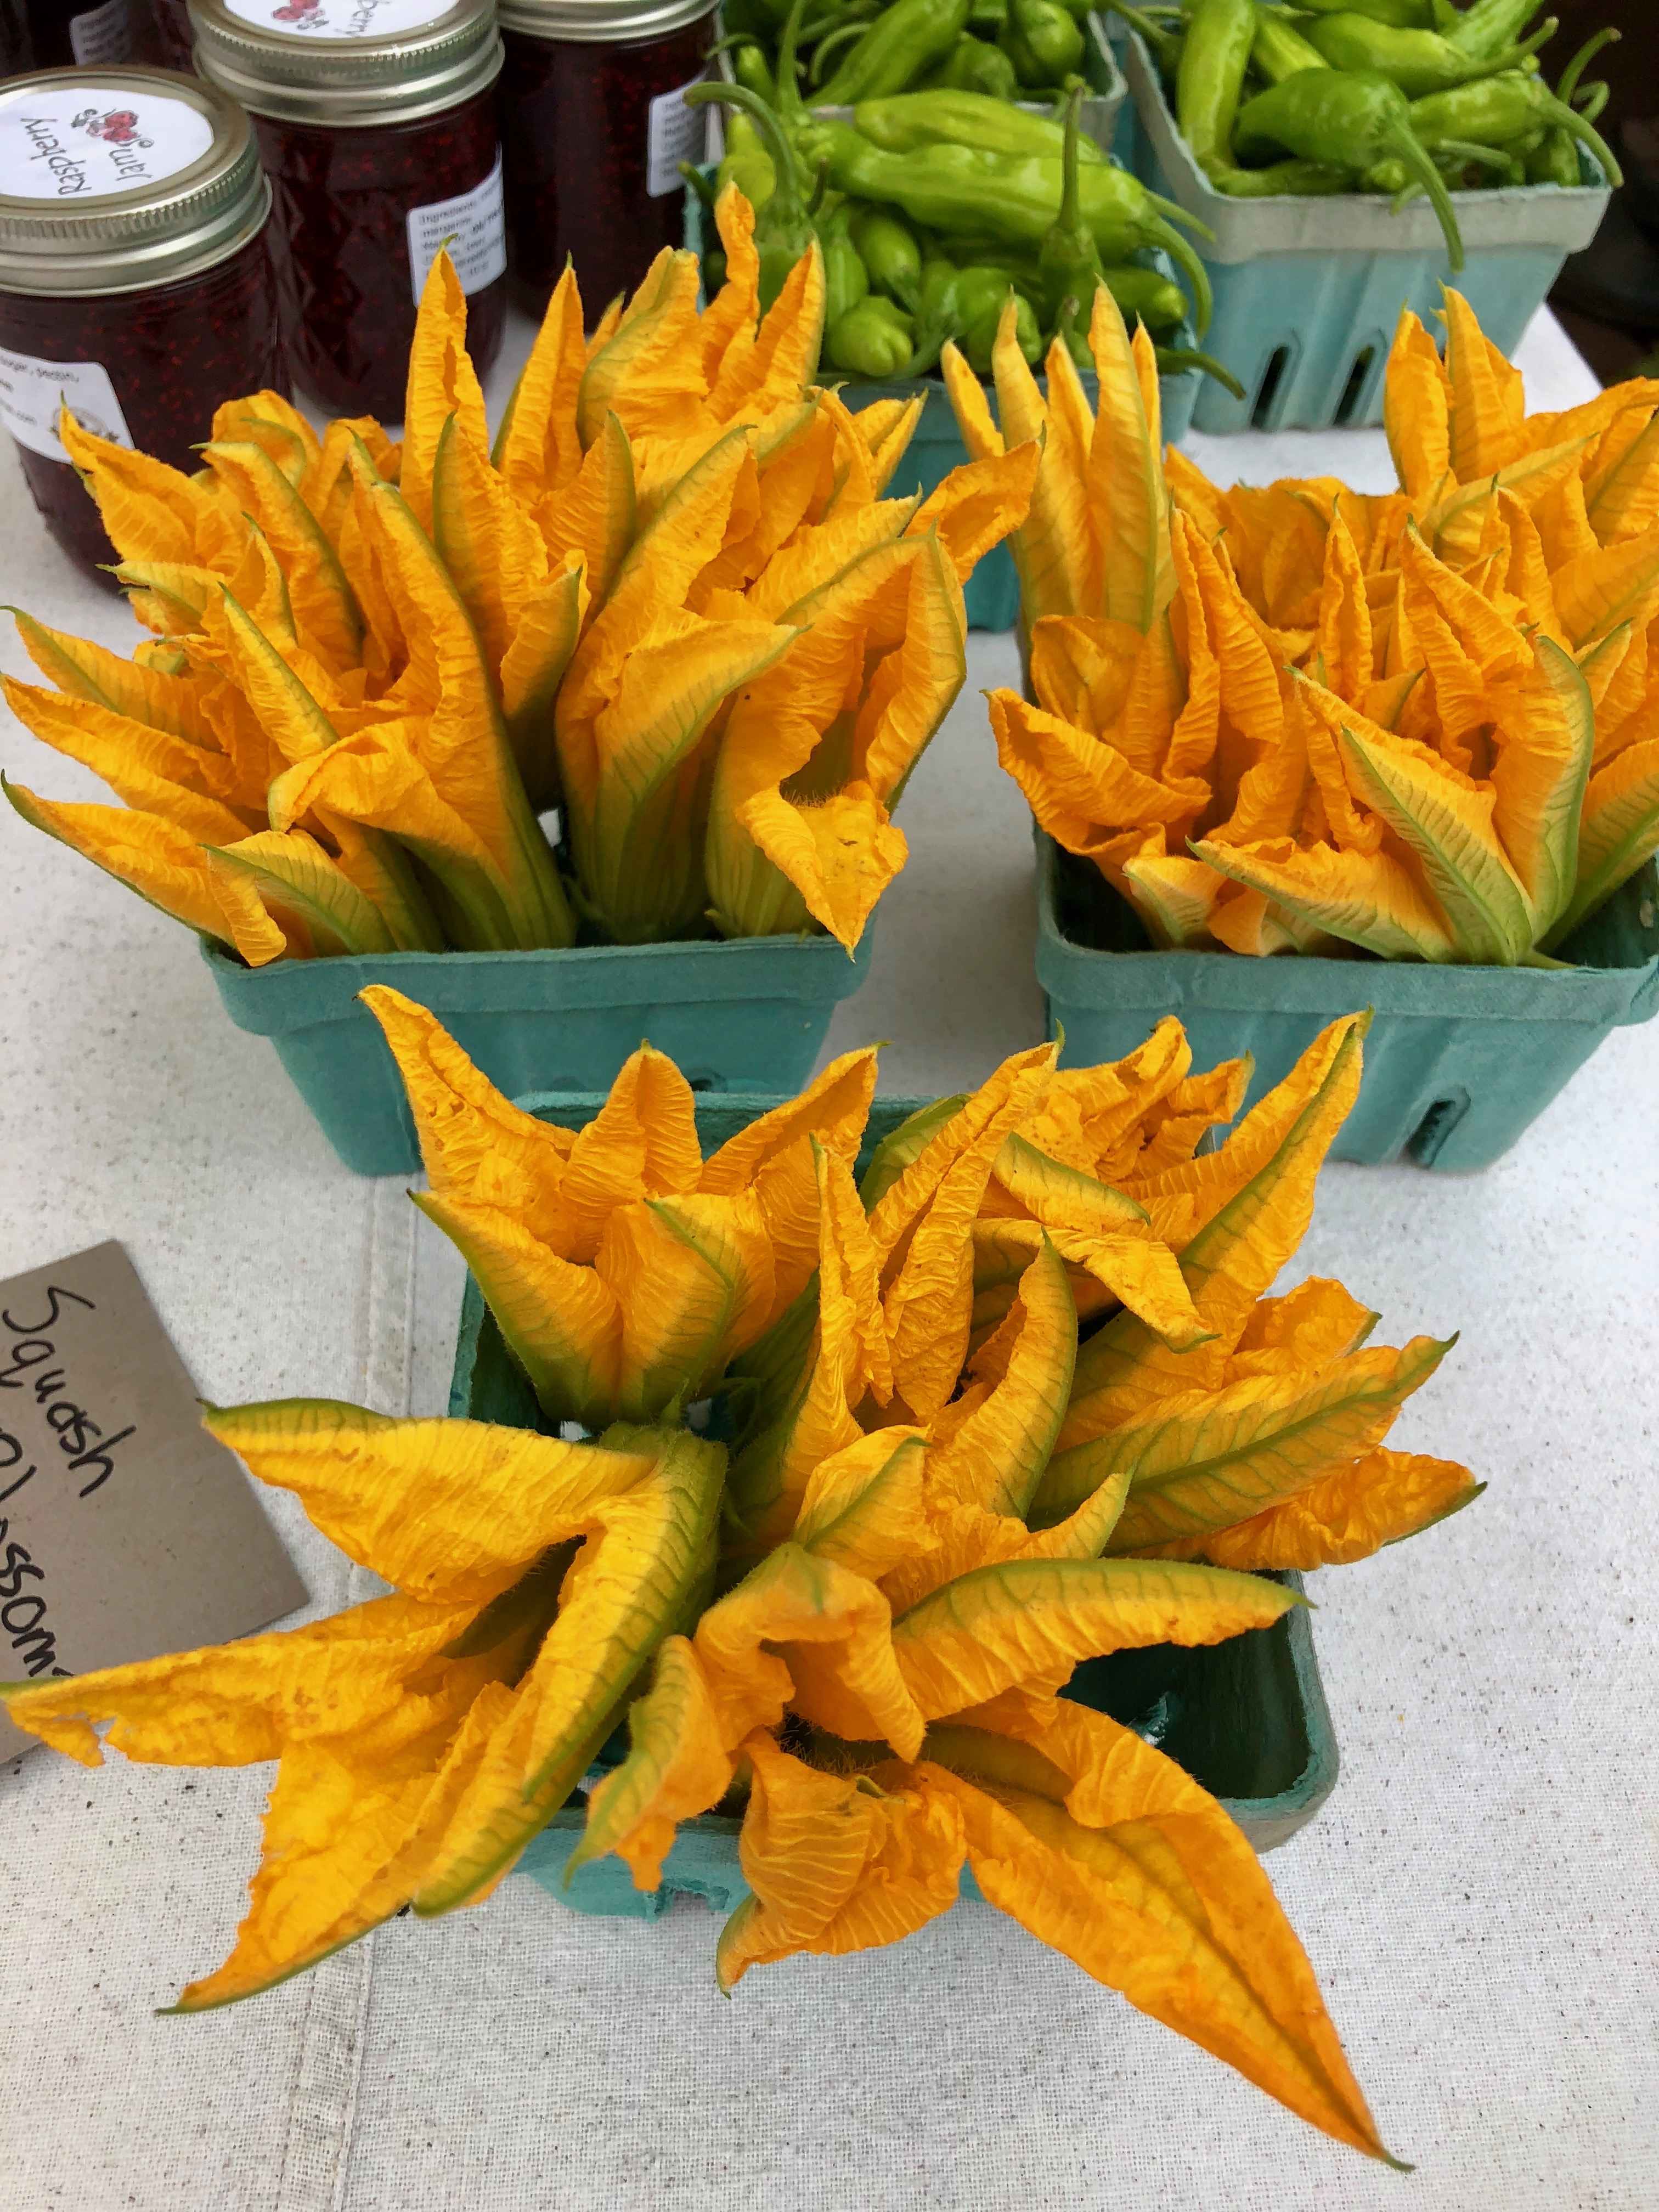 colorful Squash blossoms for sale at farmers market